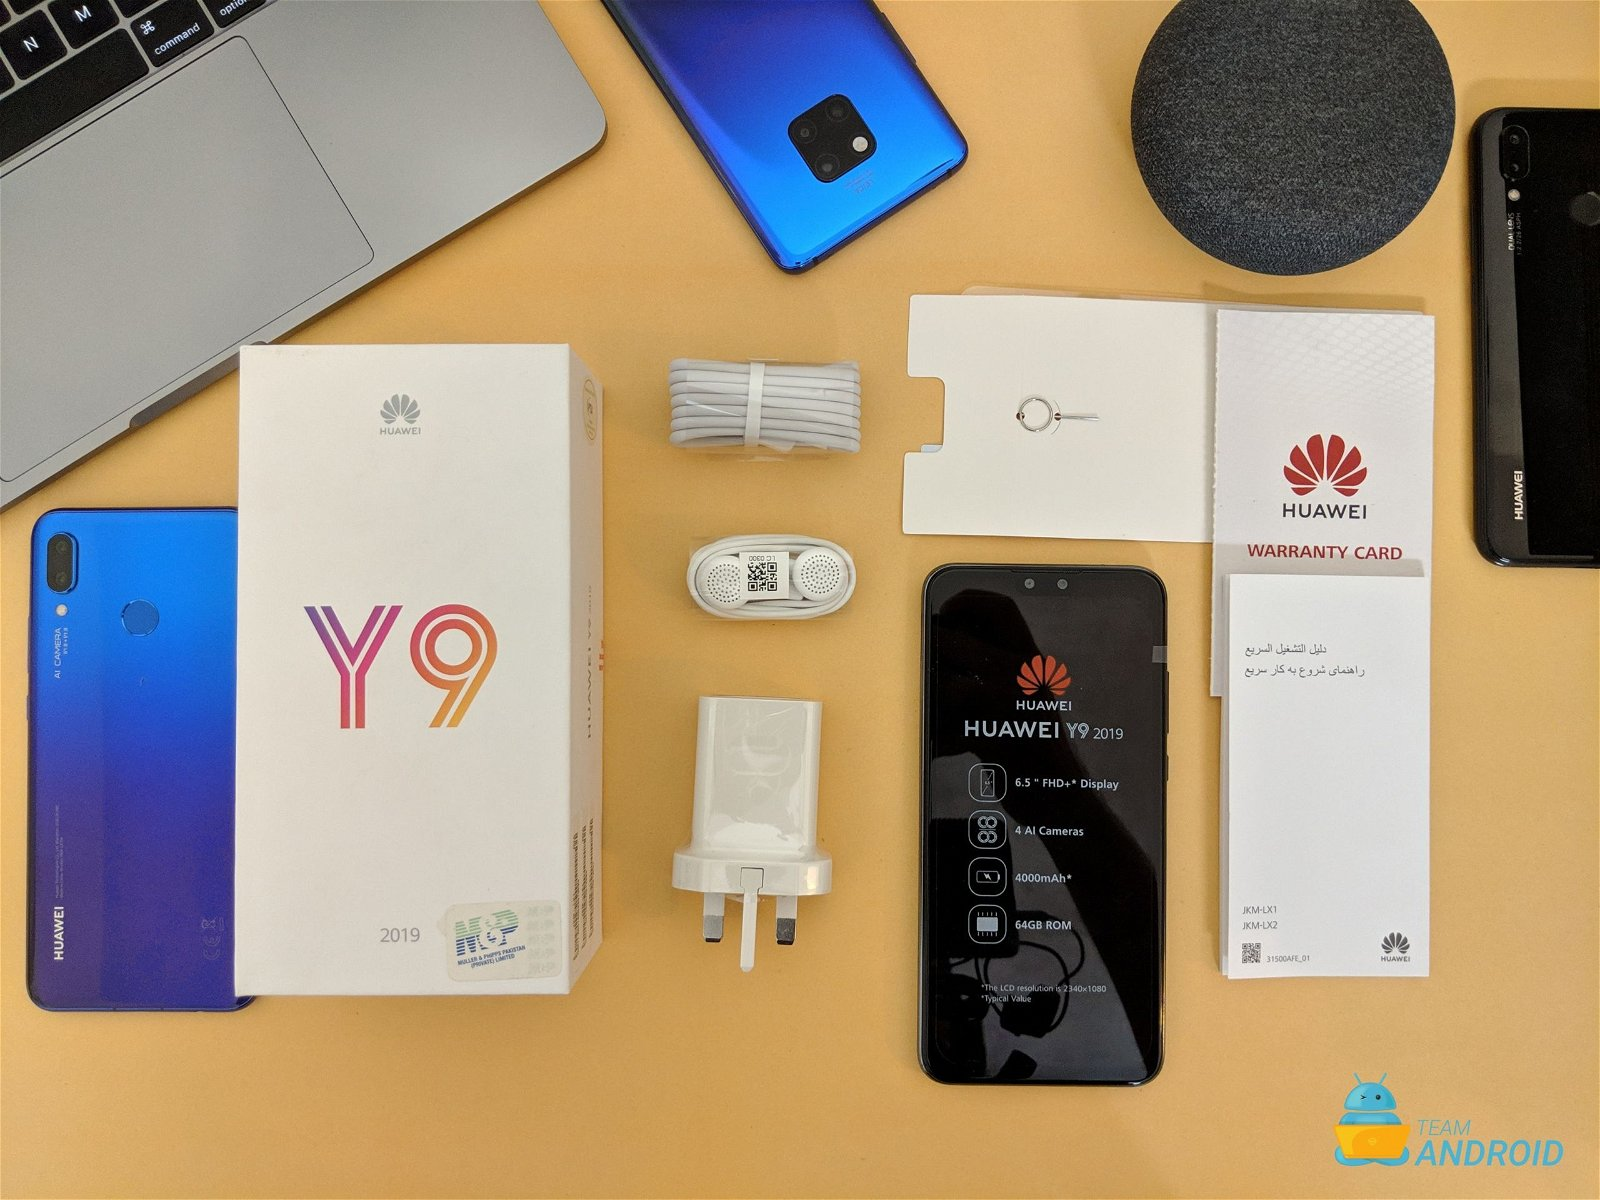 Huawei Y9 2019: Unboxing and First Impressions 5